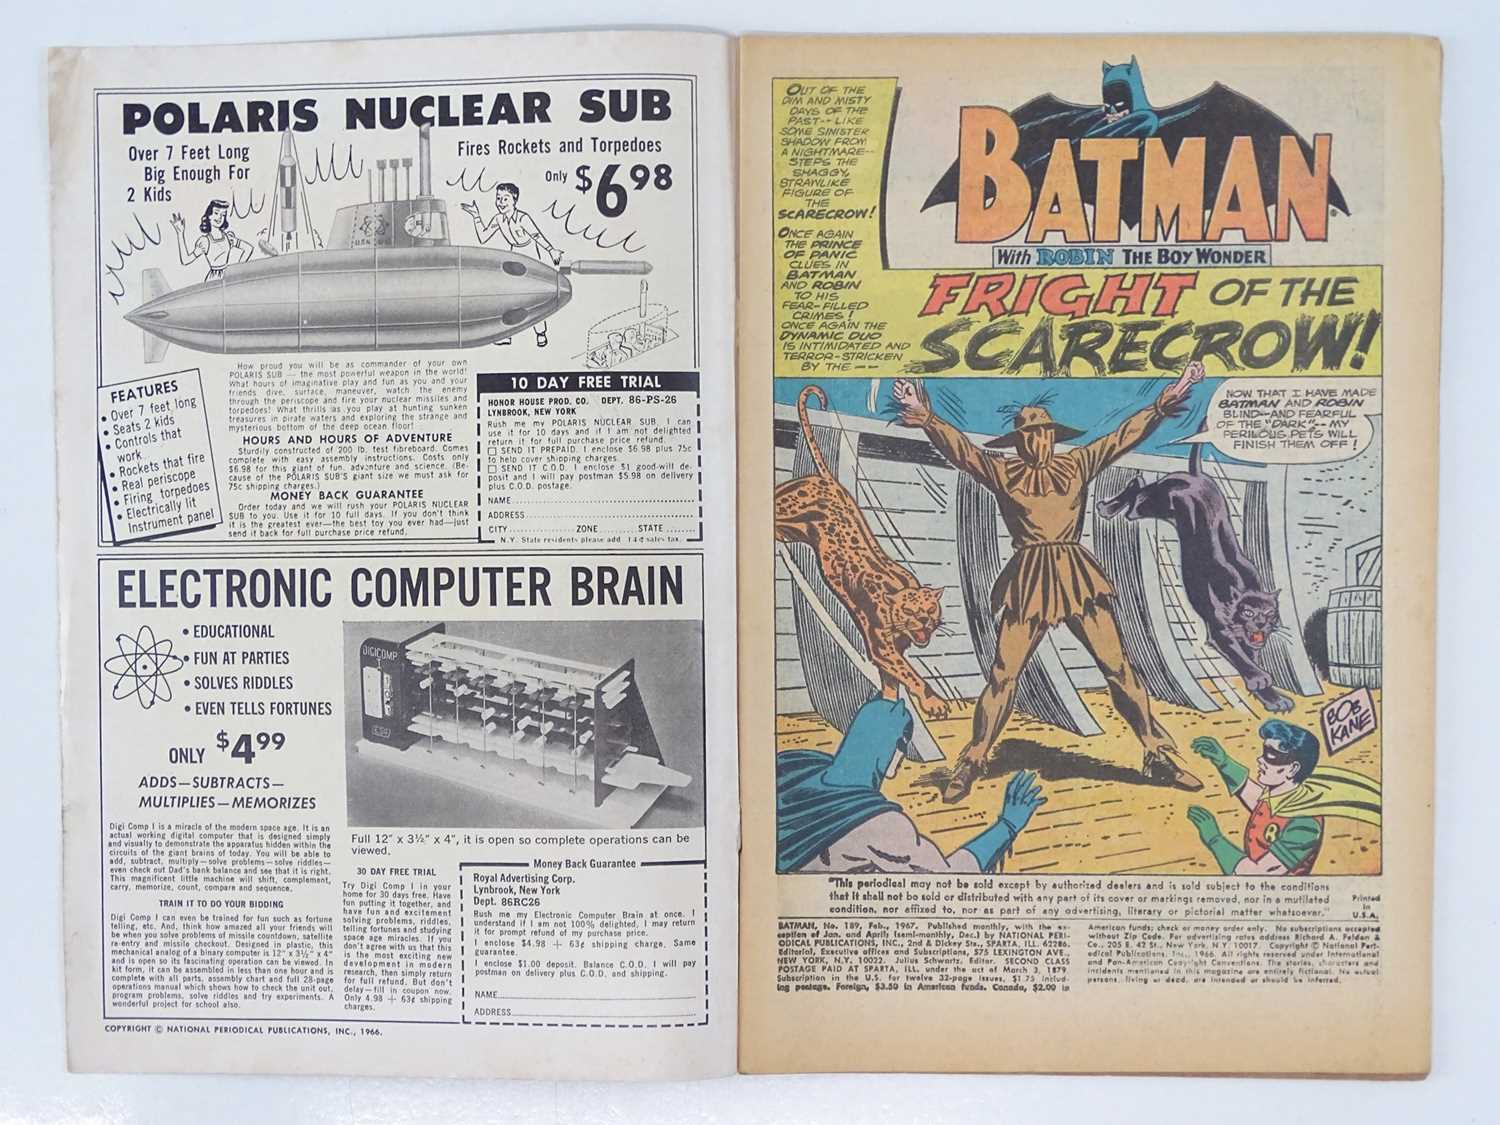 BATMAN #189 - (1967 - DC - UK Cover Price) - KEY Book - First Silver Age appearance of the Scarecrow - Image 3 of 9